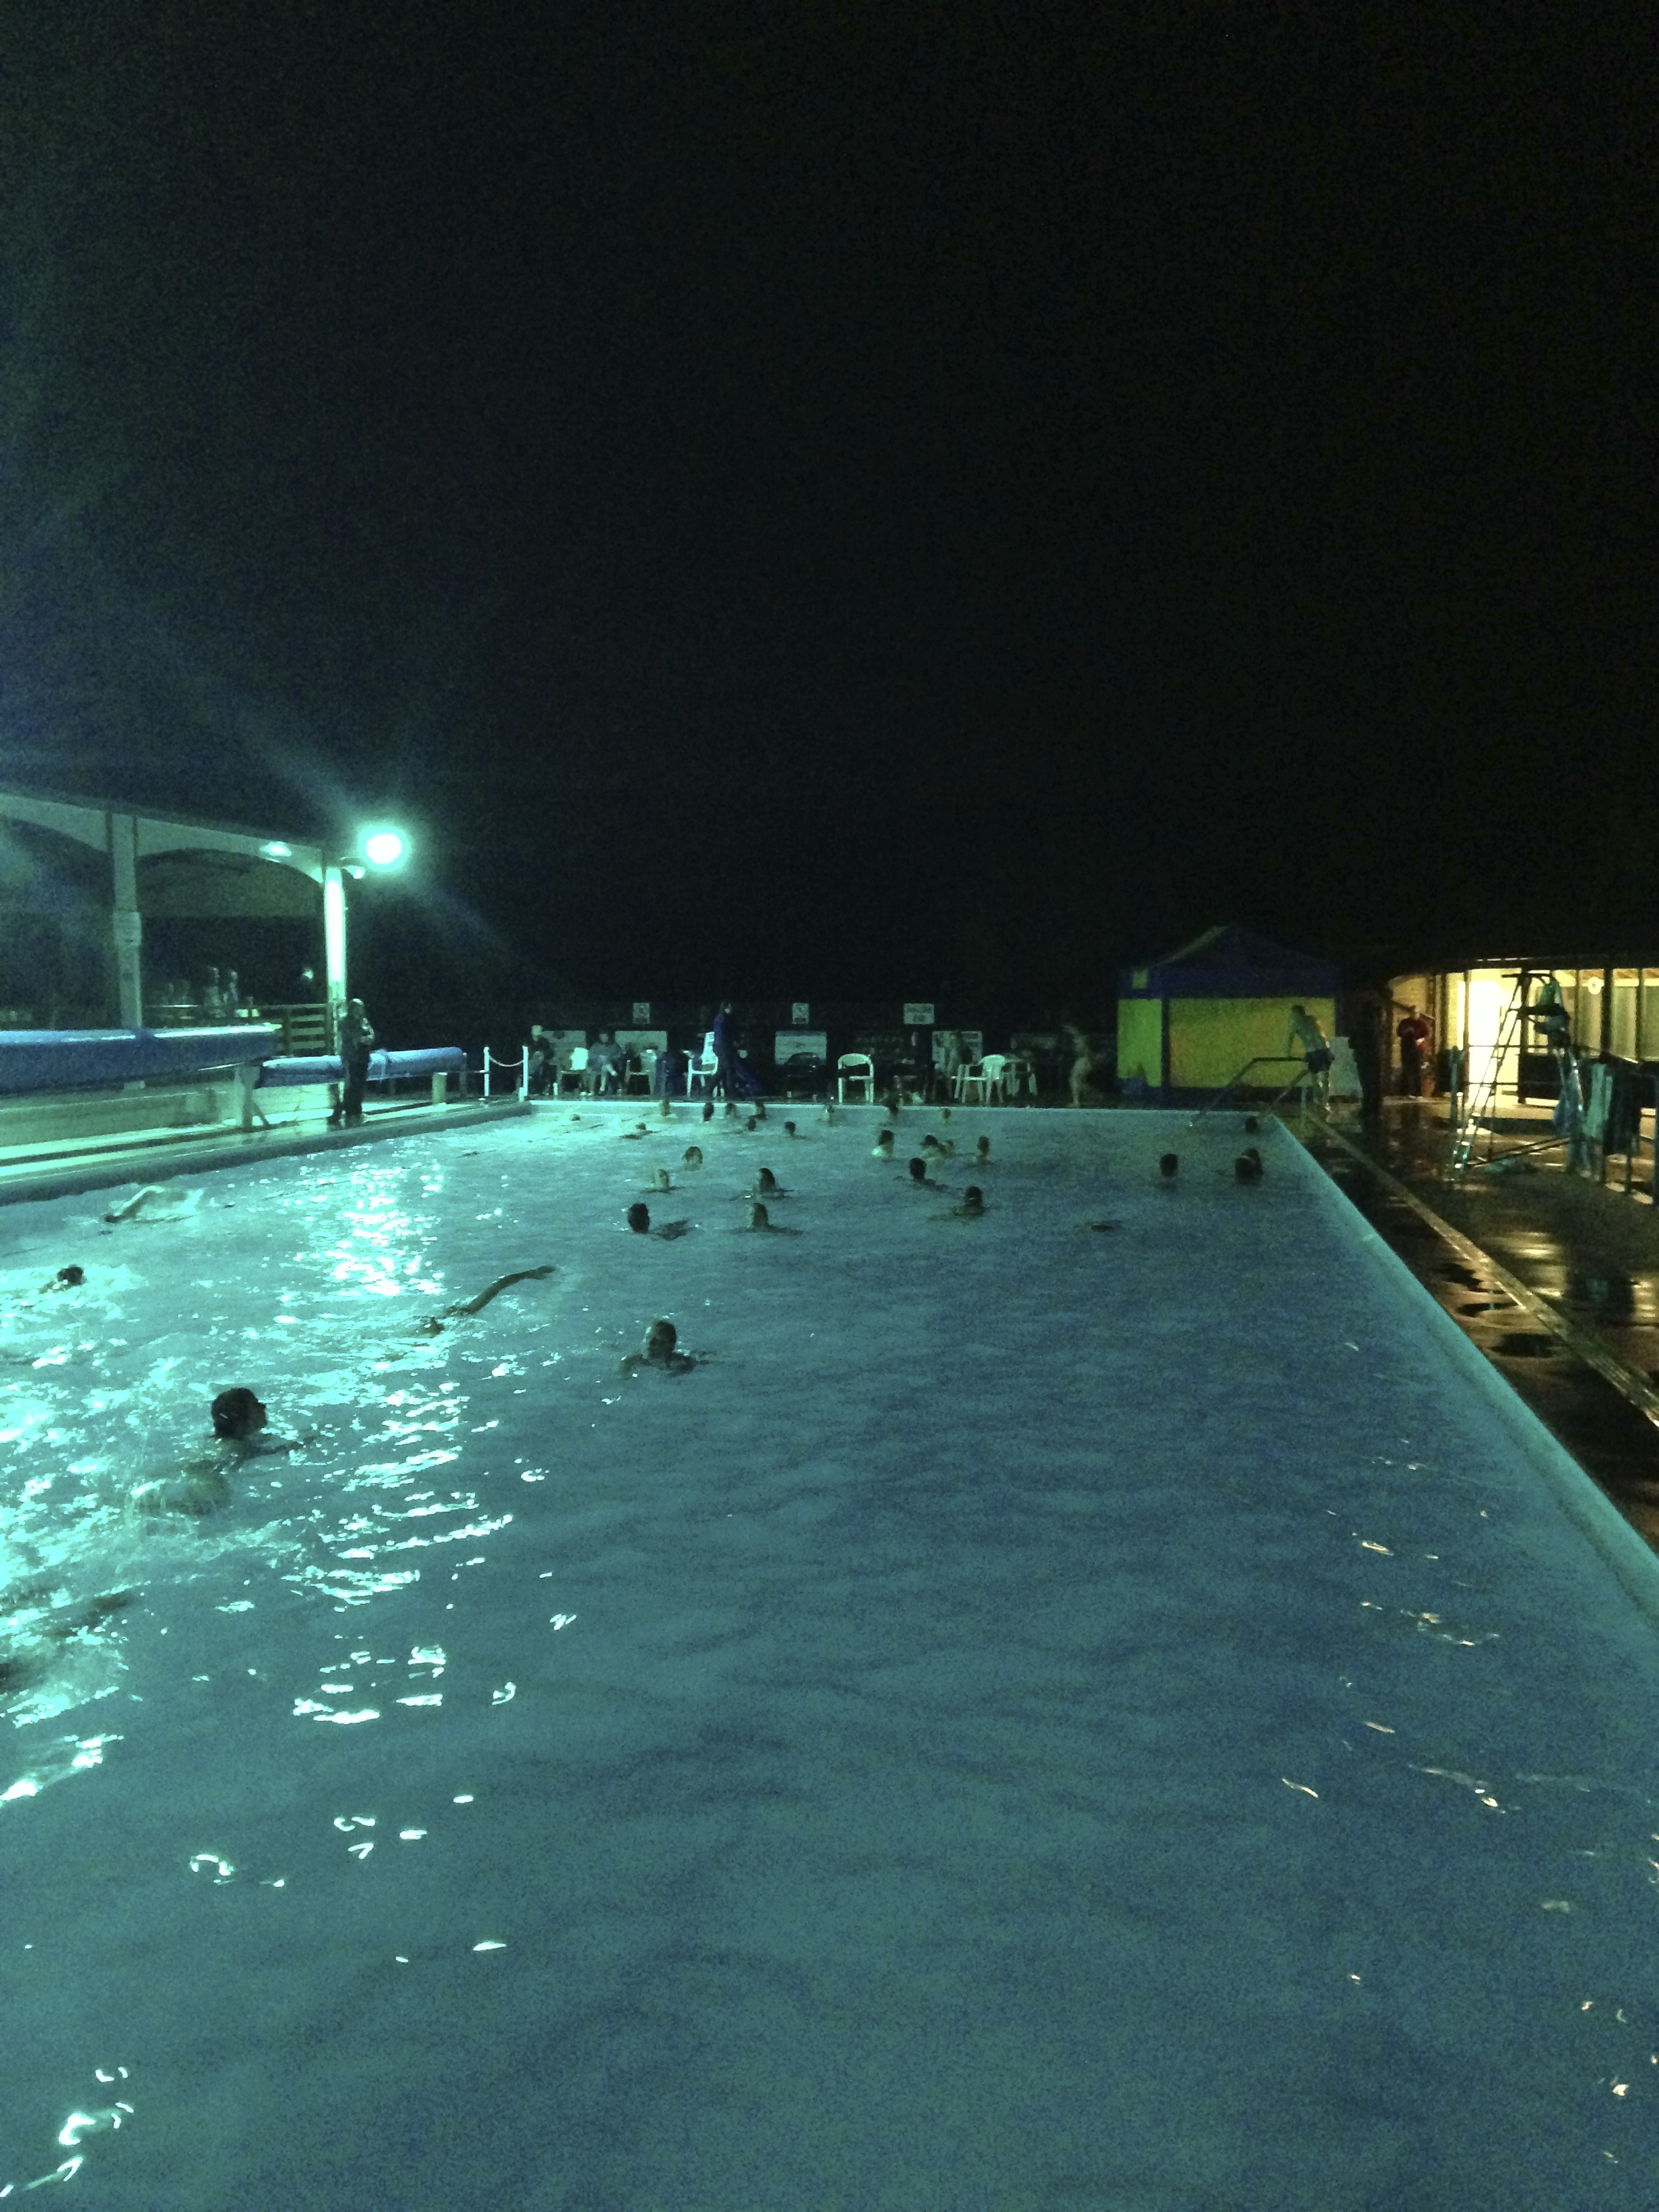 Pool Water At Night A Fun Family Evening Out Enjoy The Local